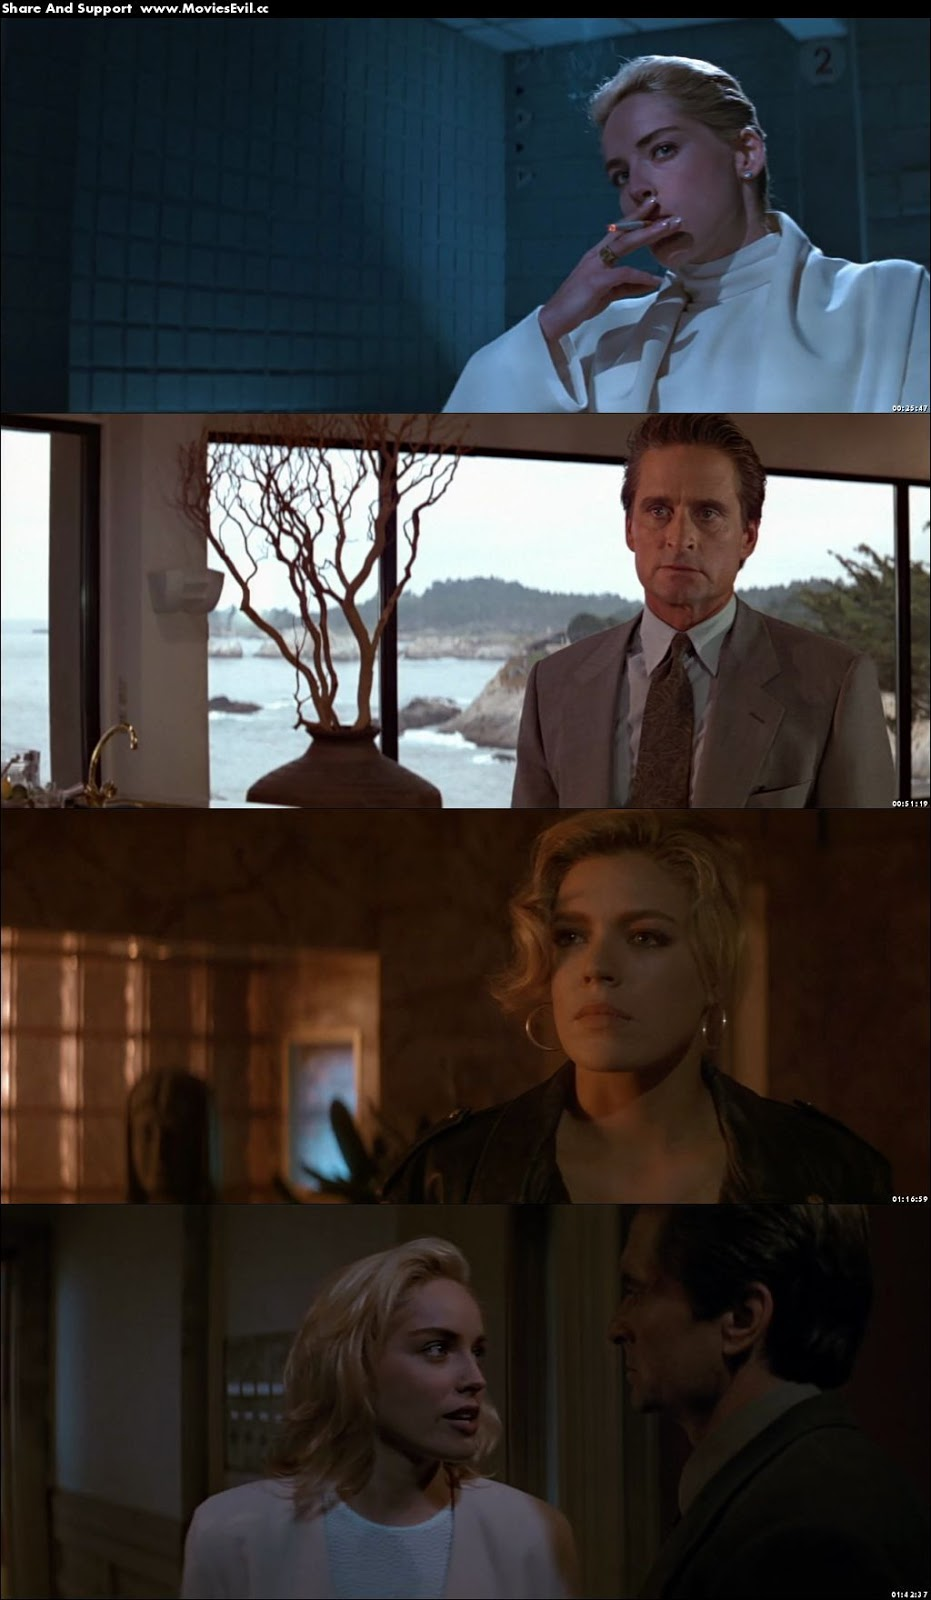 Basic Instinct 1992 Unrated Dual Audio 720p BluRay x264,Basic Instinct 1992 full movie download,Basic Instinct 1992direct link download,Basic Instinct 1992300 mb download,Basic Instinct 1992 watch online hindi,Basic Instinct 1992 hindi dubbed download